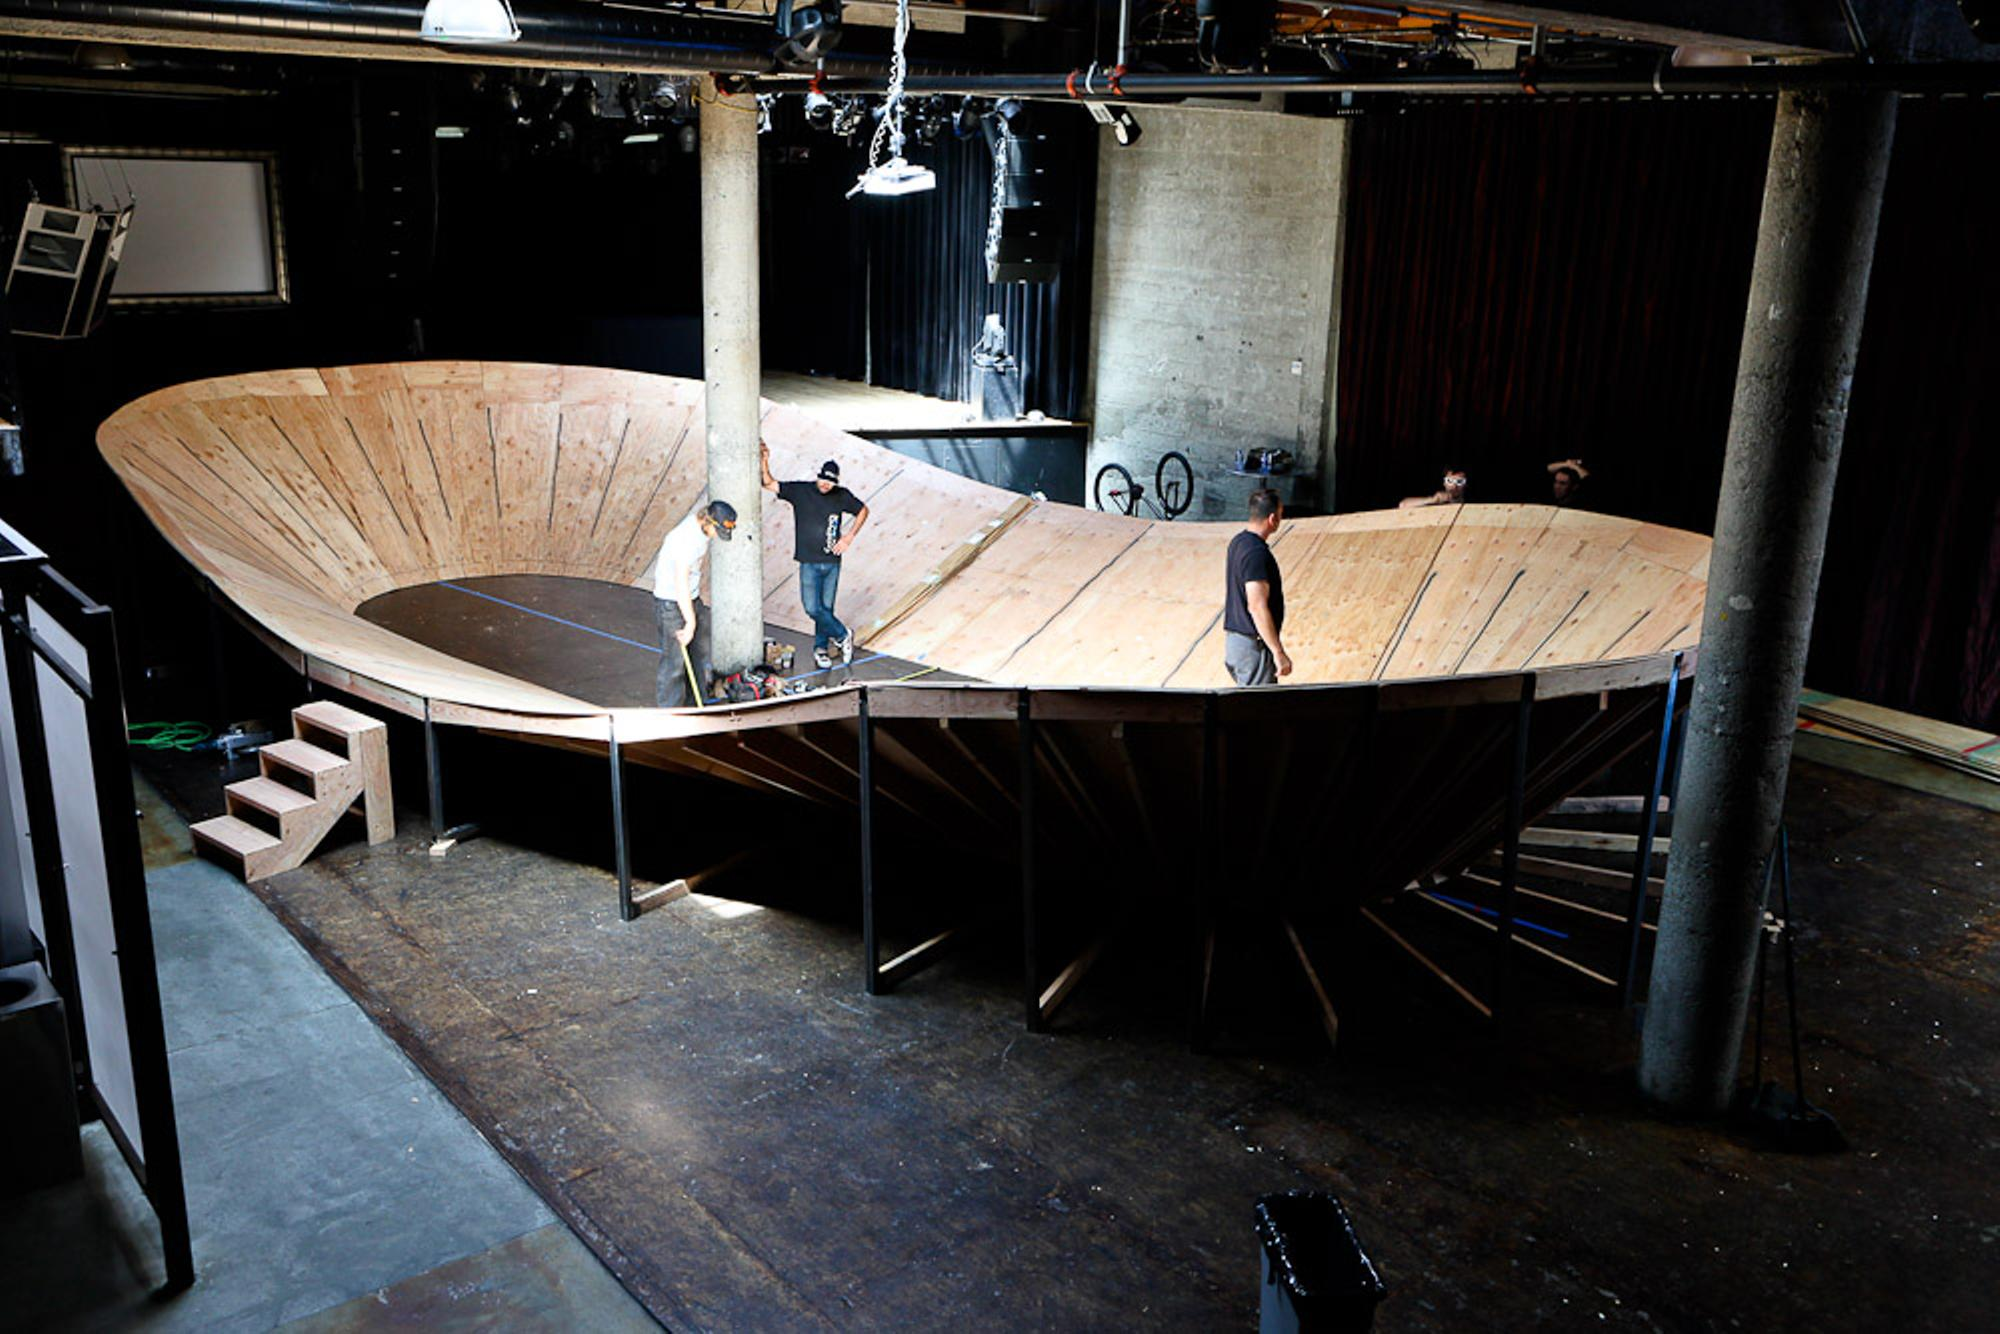 Setting Up the Red Bull MiniDrome